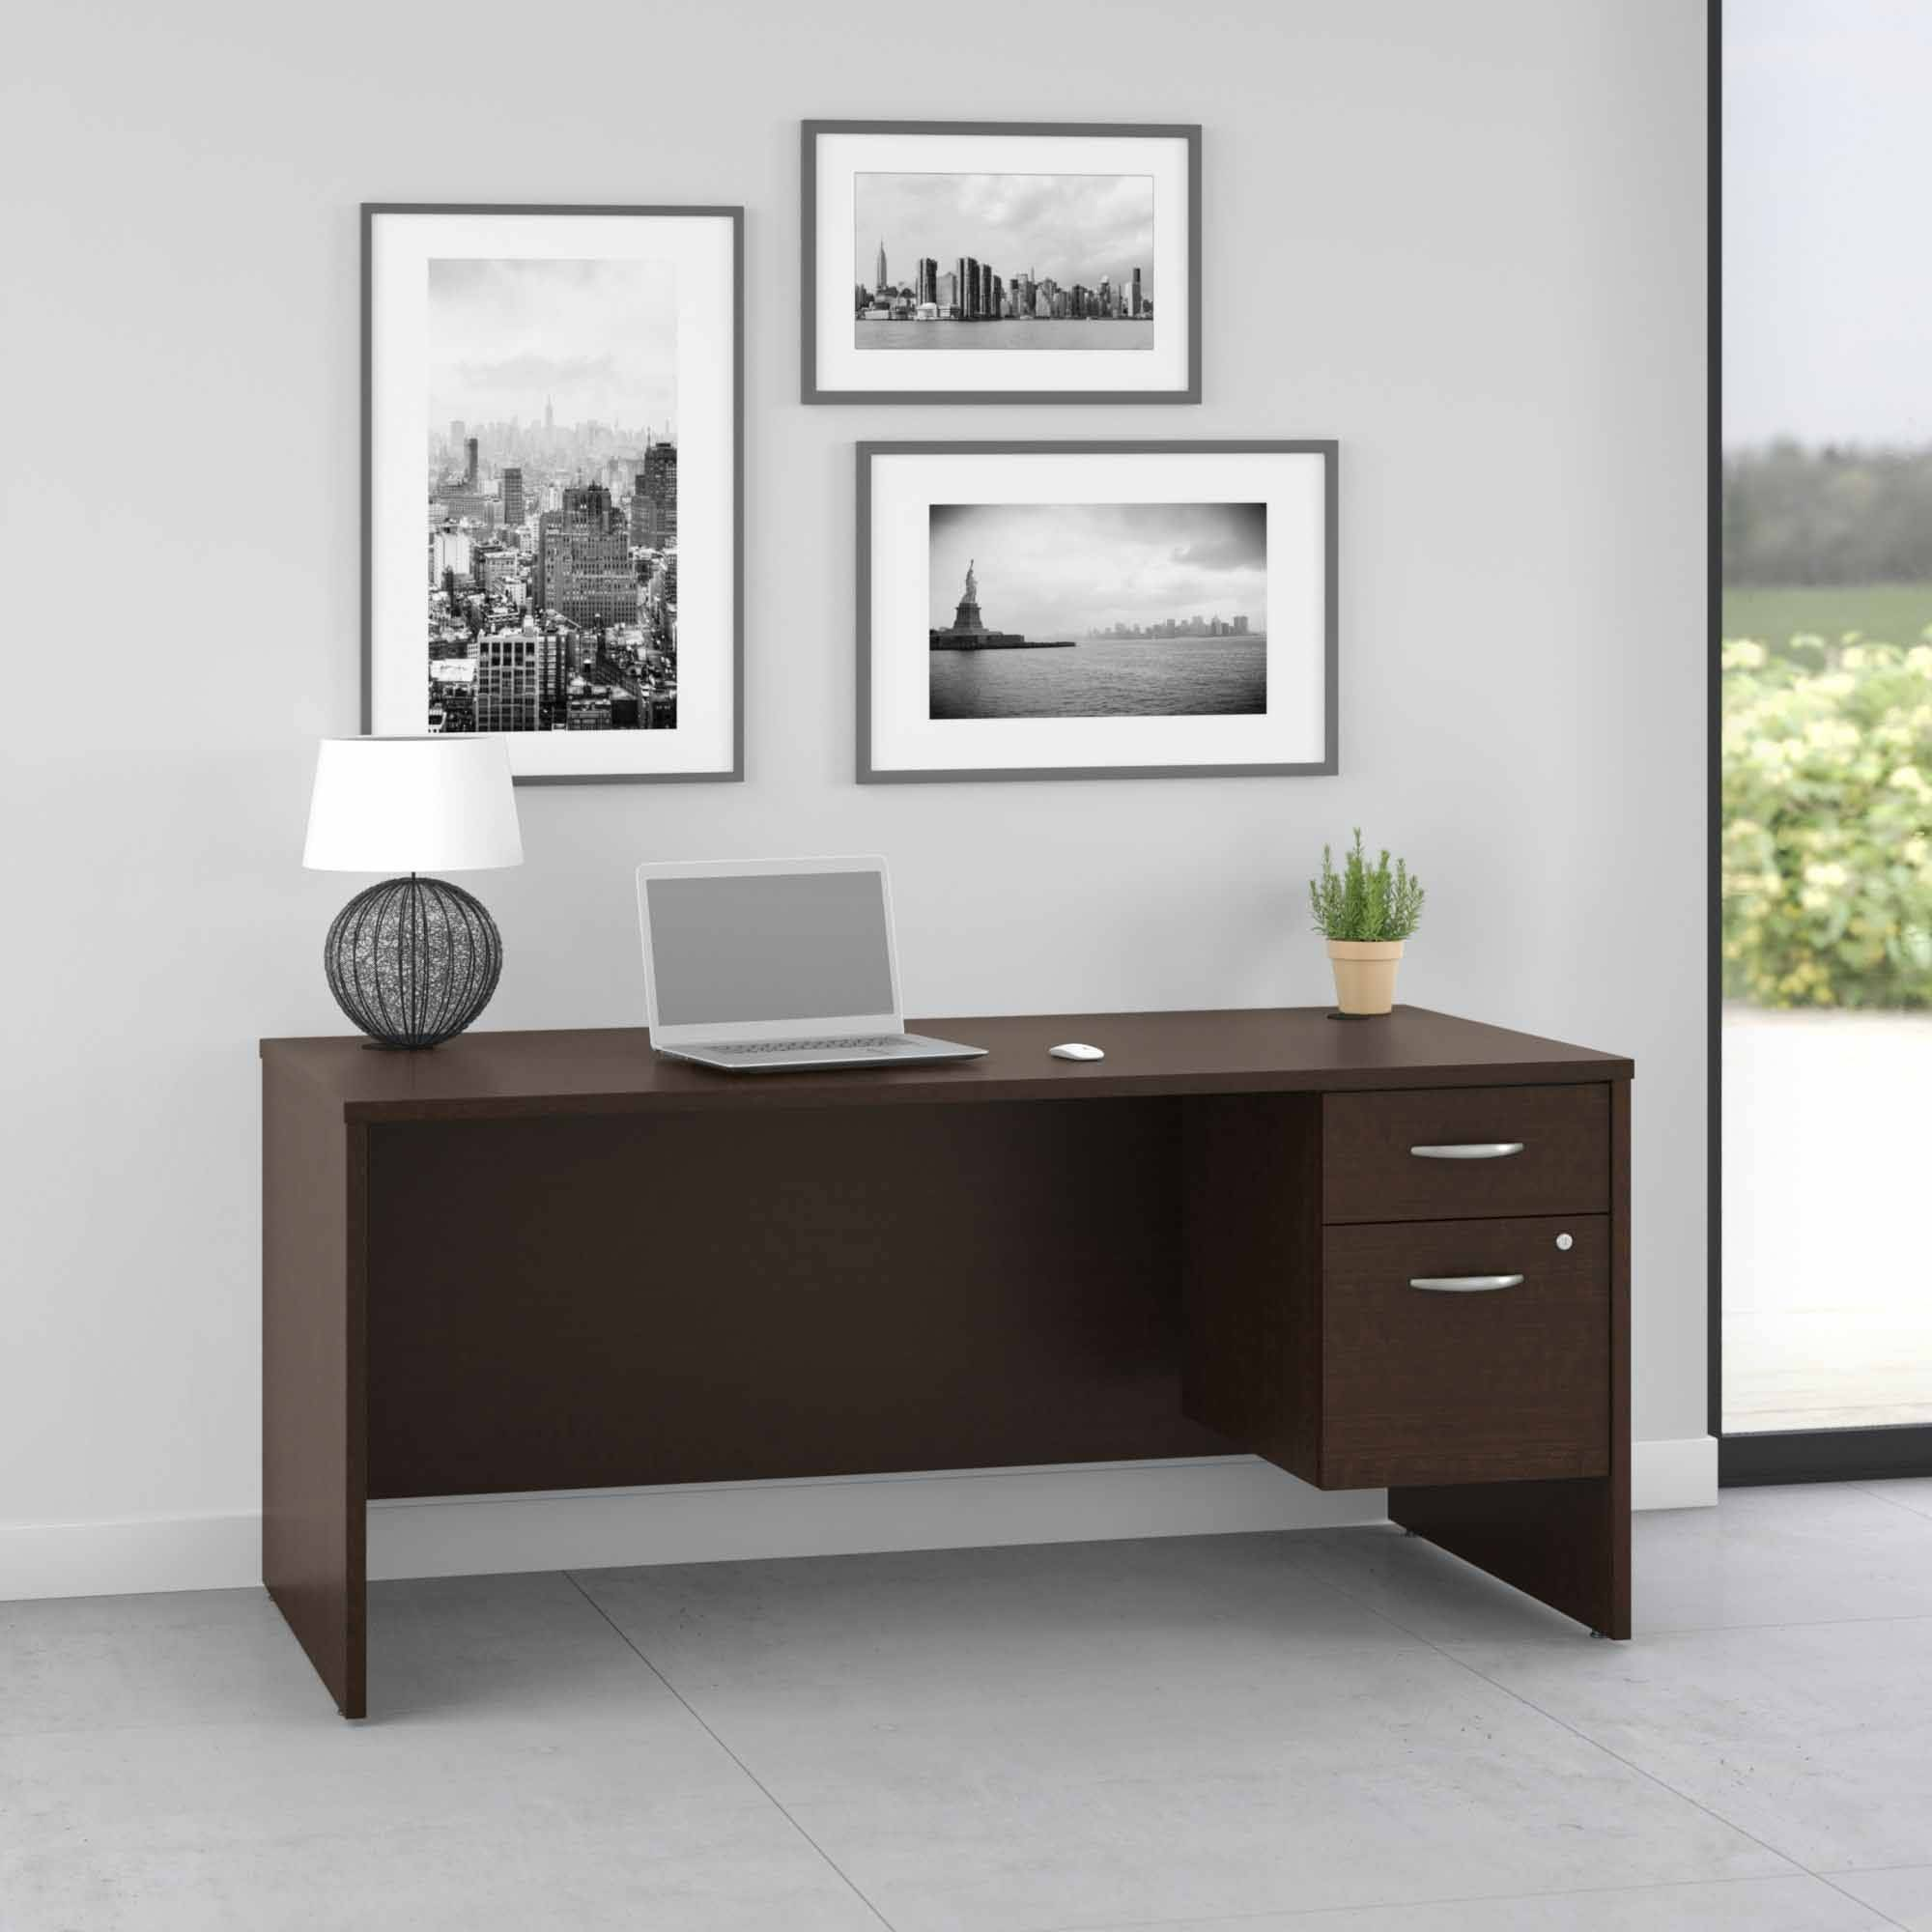 Pro Office 66W Computer Desk with 3/4 Pedestal in Mocha Cherry